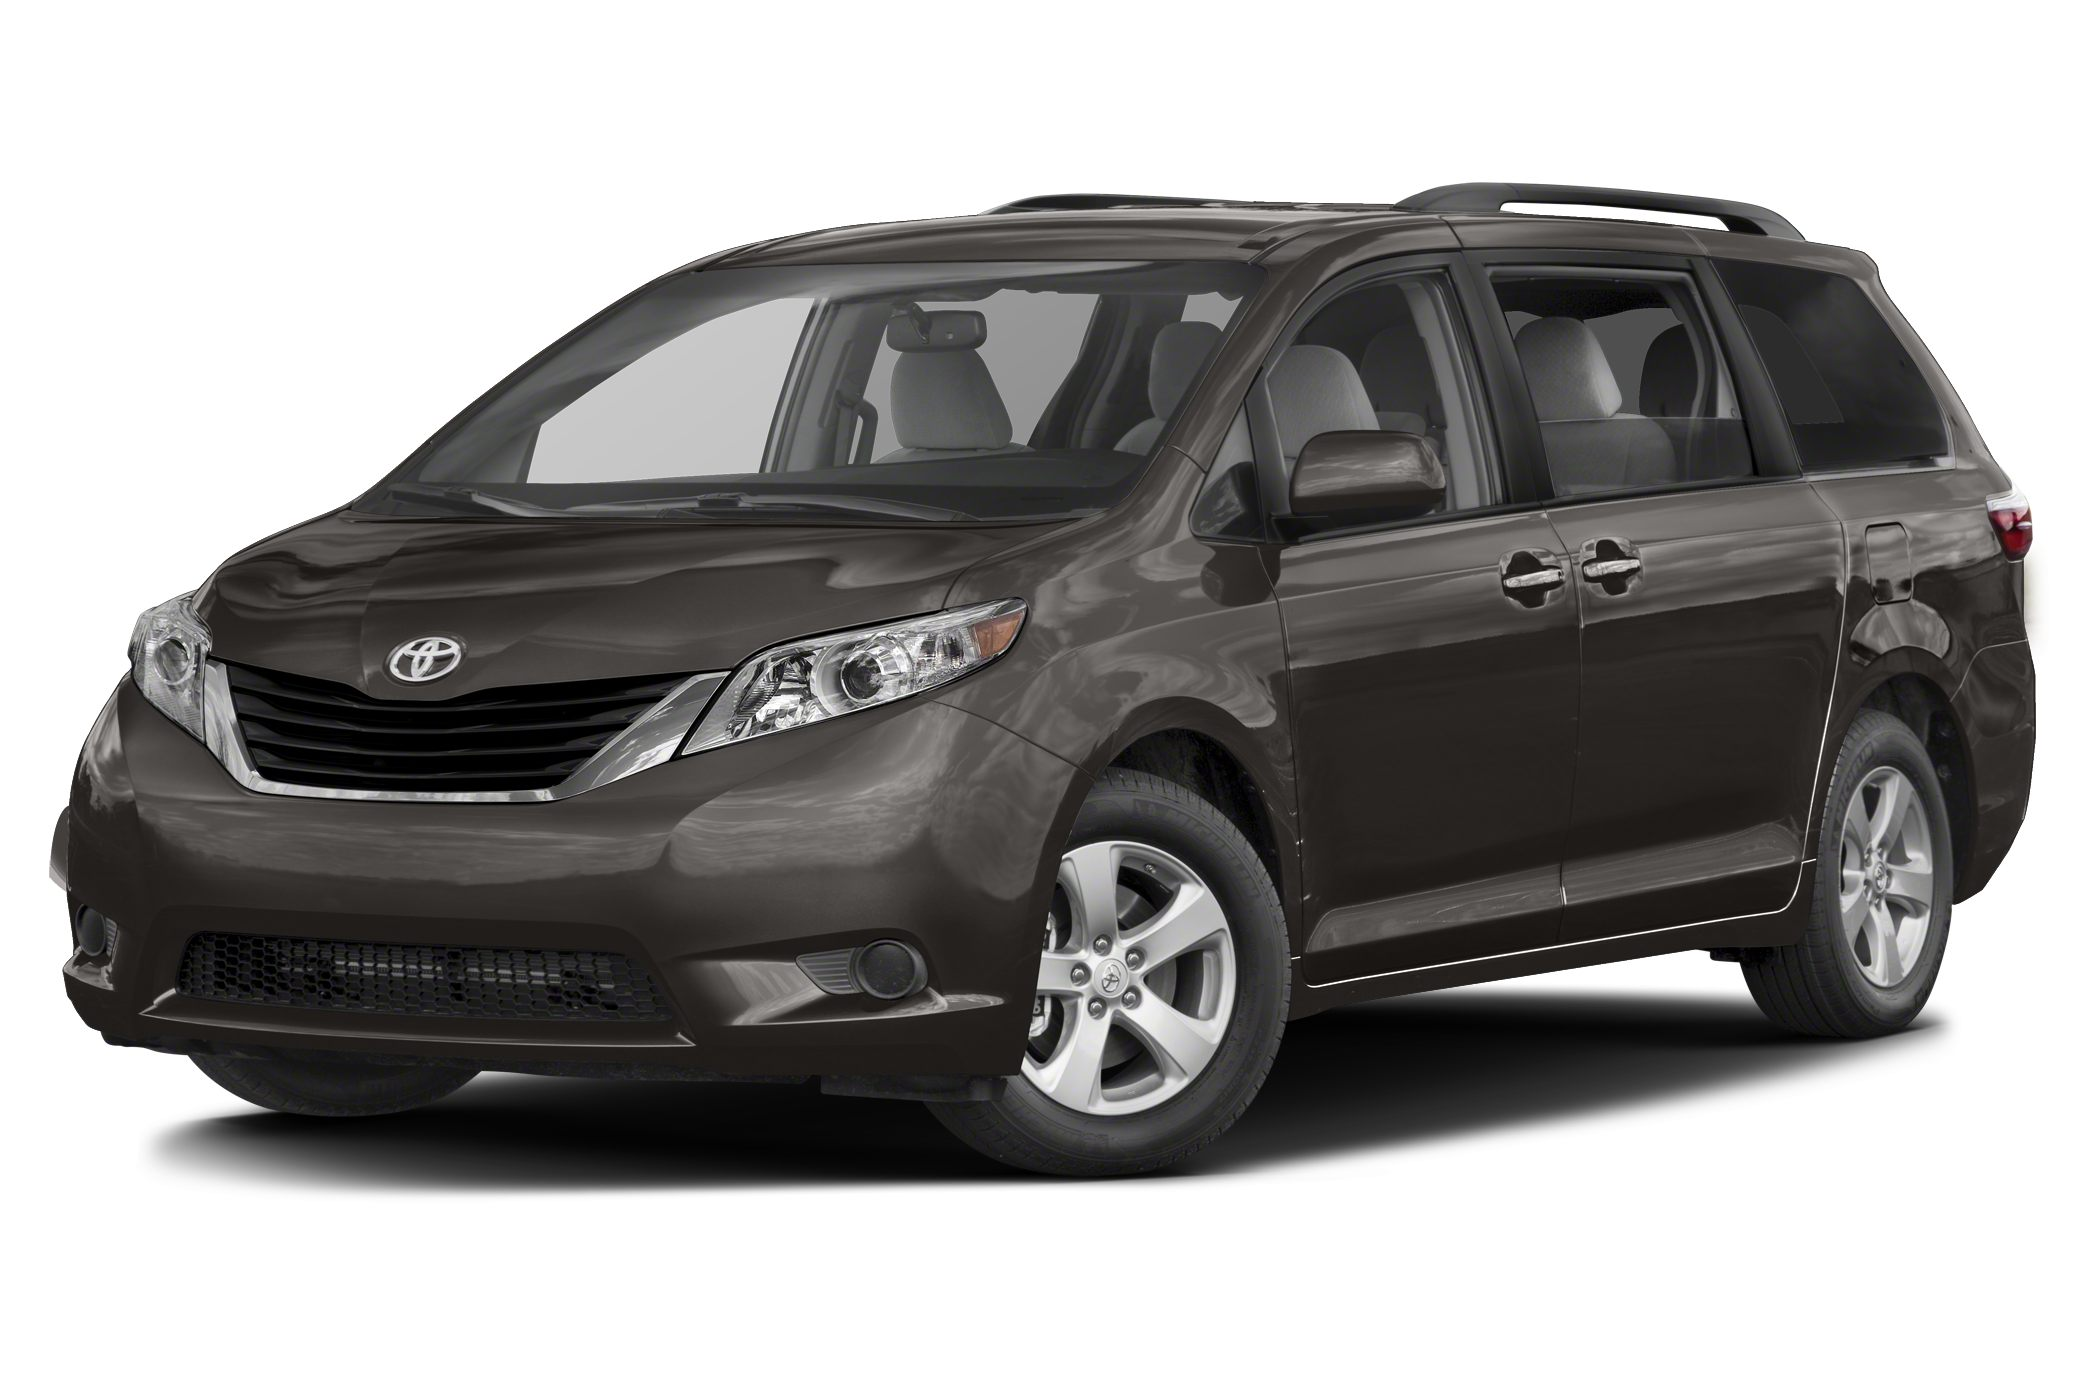 2017 Toyota Sienna LE 8 Passenger Prices are PLUS tax tag title fee 799 Pre-Delivery Service